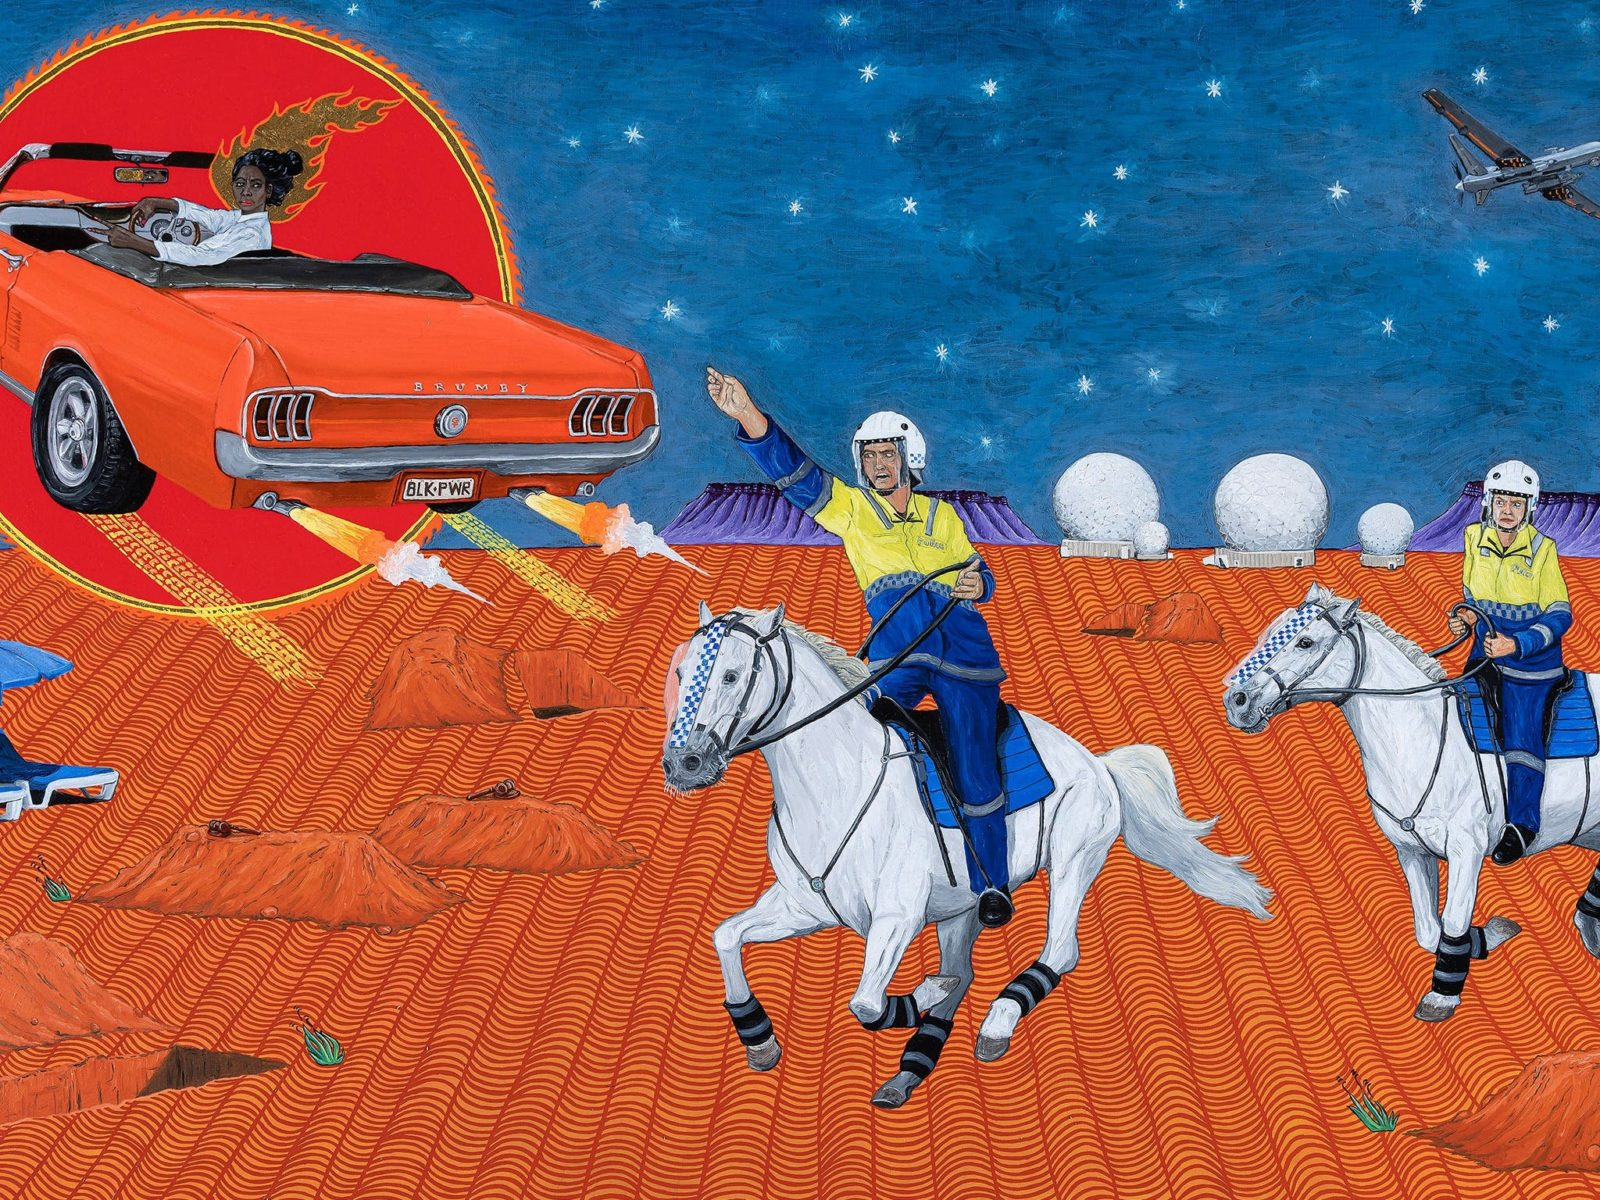 Painting of desert with police on horses and flying orange car.